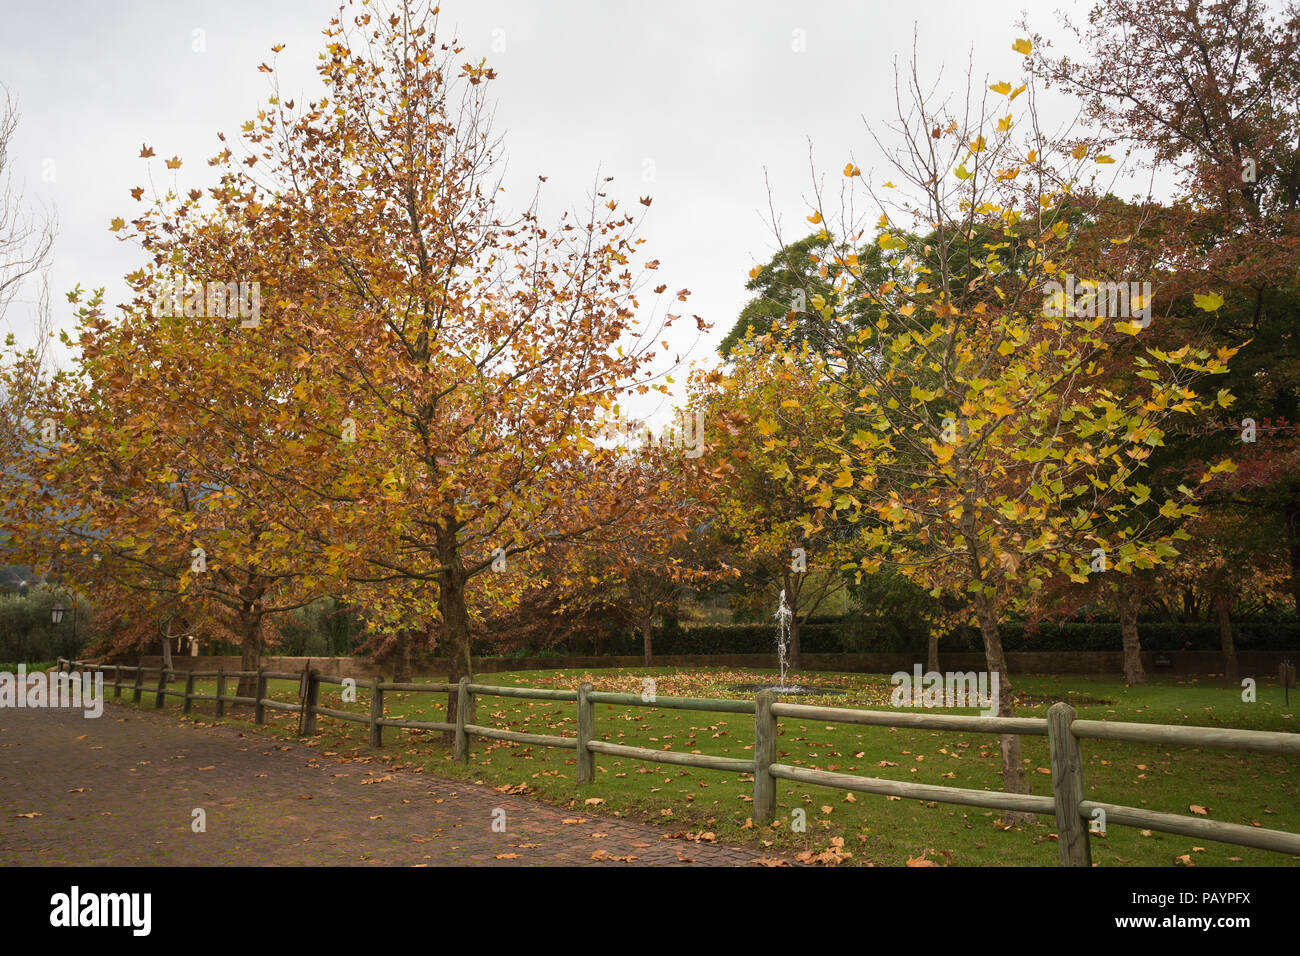 Autumn or Fall garden scene on a grey cloudy day with trees and ...